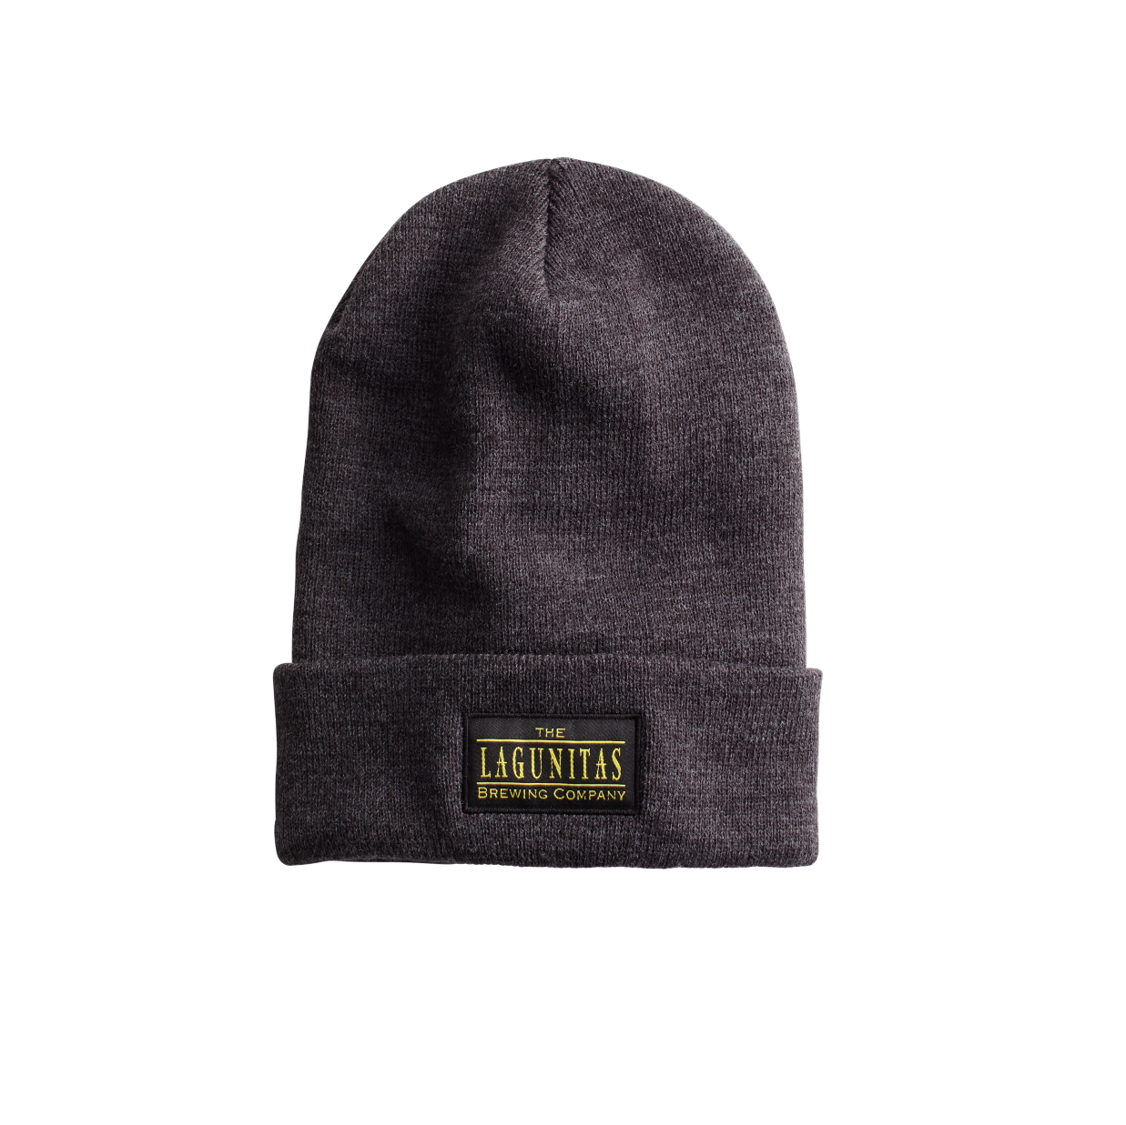 The tasty little Lagunitas logo on this classic beanie really hits the spot.